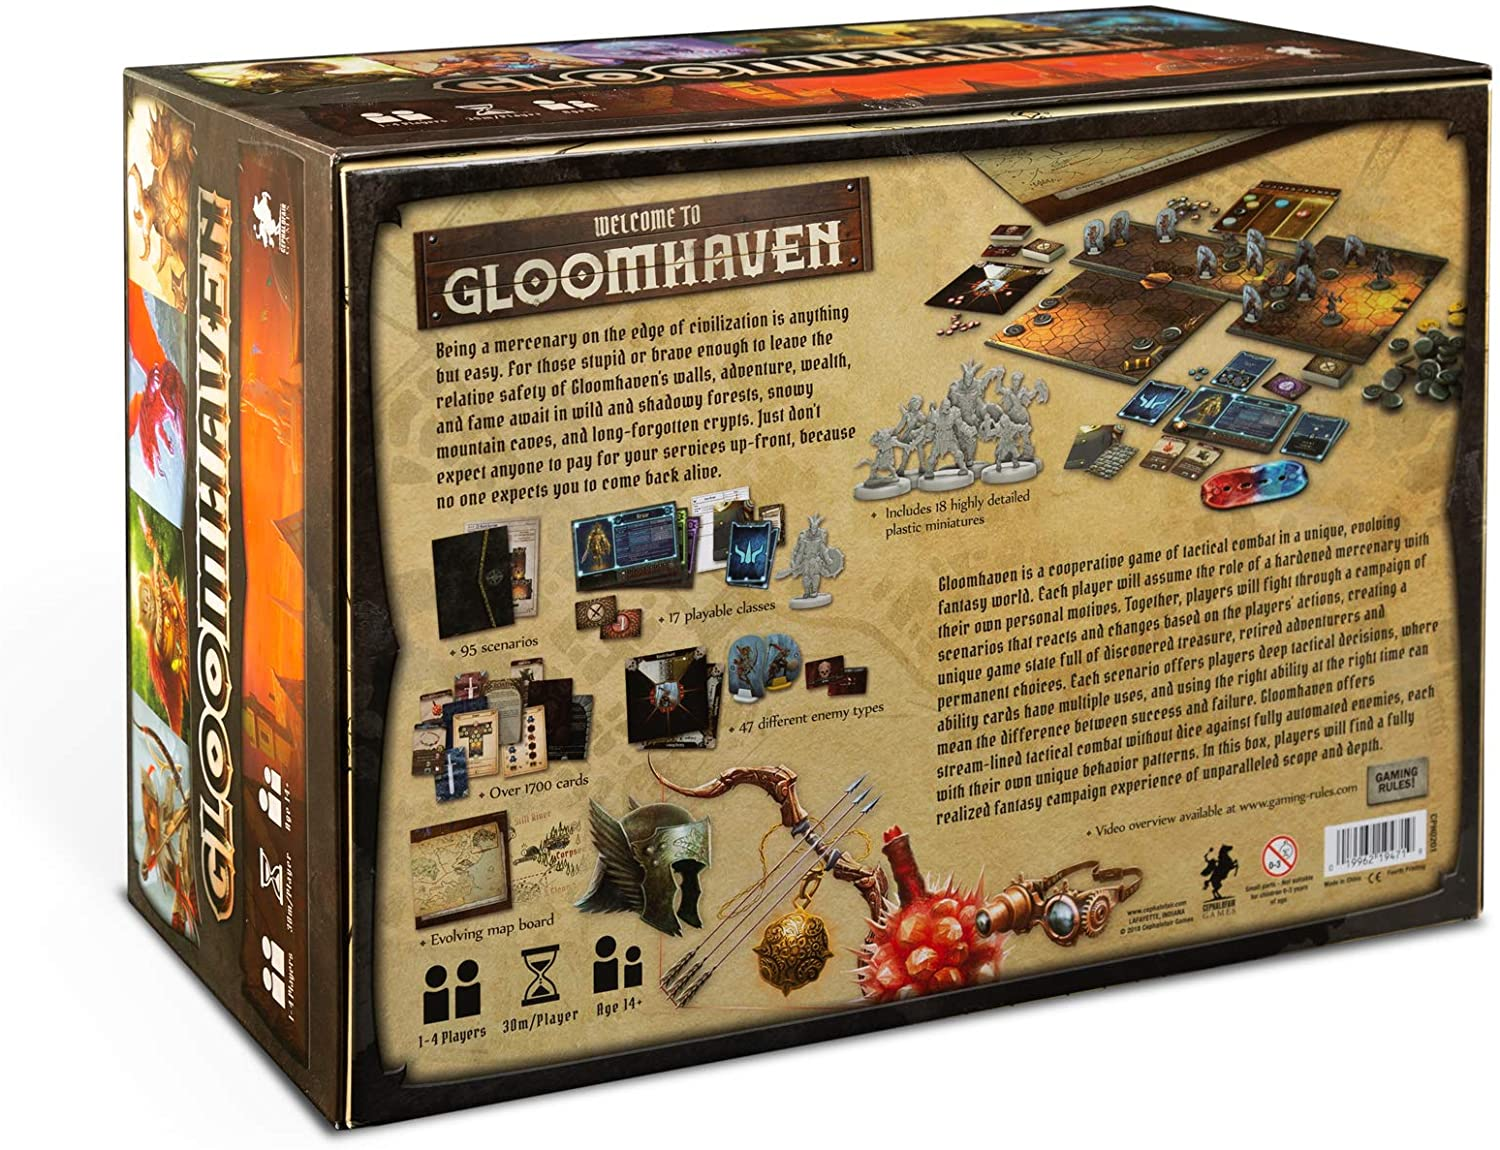 Gloomhaven Replacement Parts 20 Card Sleeved Player 4 Attack Deck